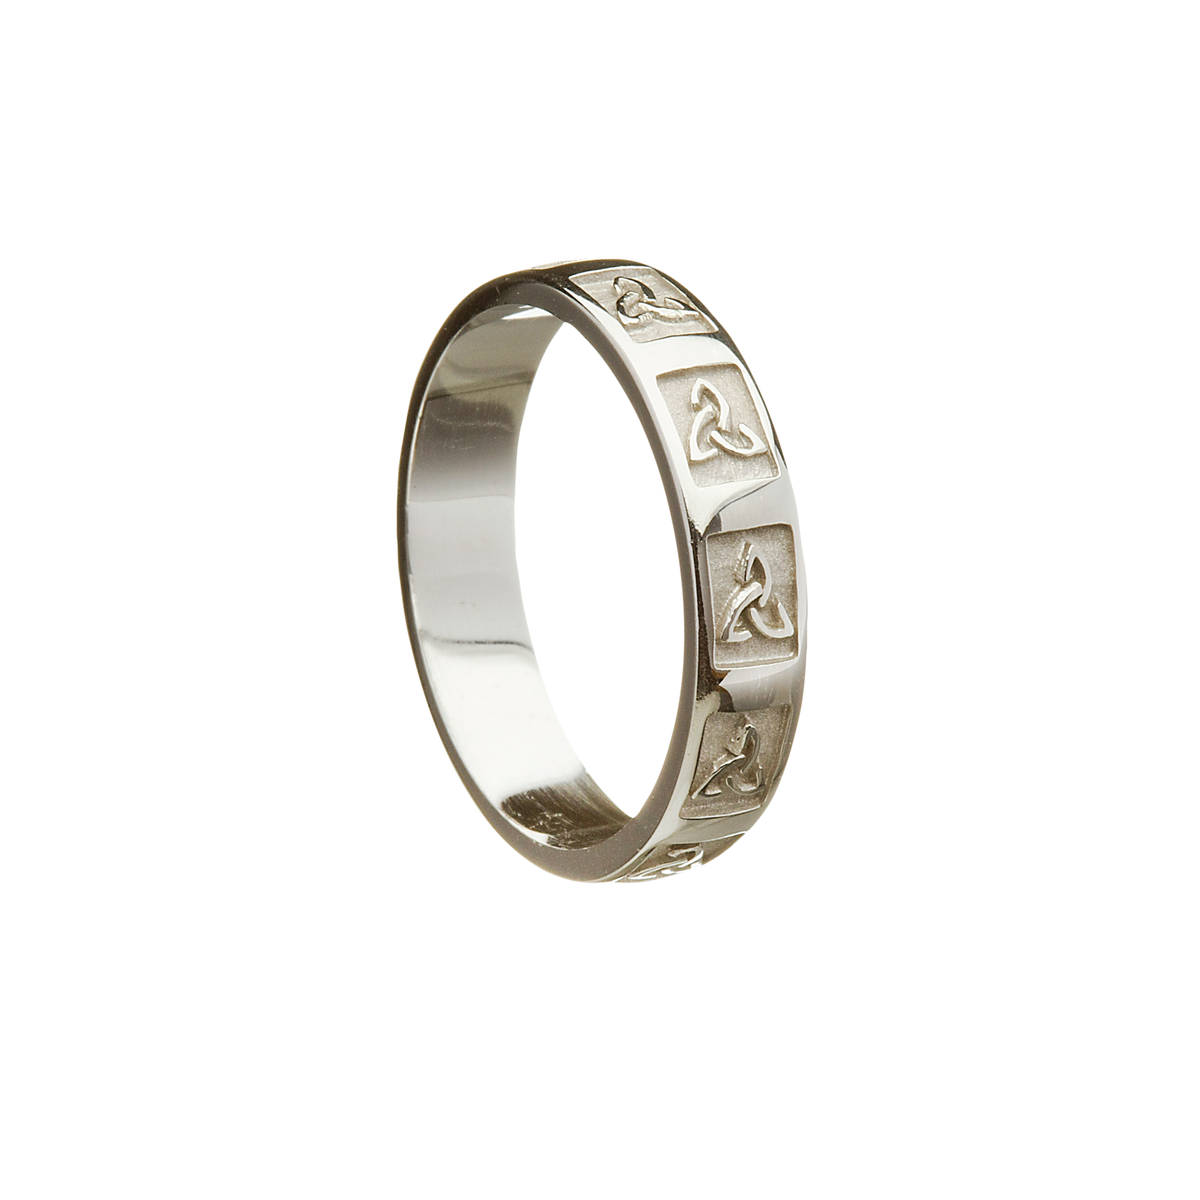 Sterling Silver unisex wedding band with raised window Trinity Knot Design.   Width: 3.7 mm